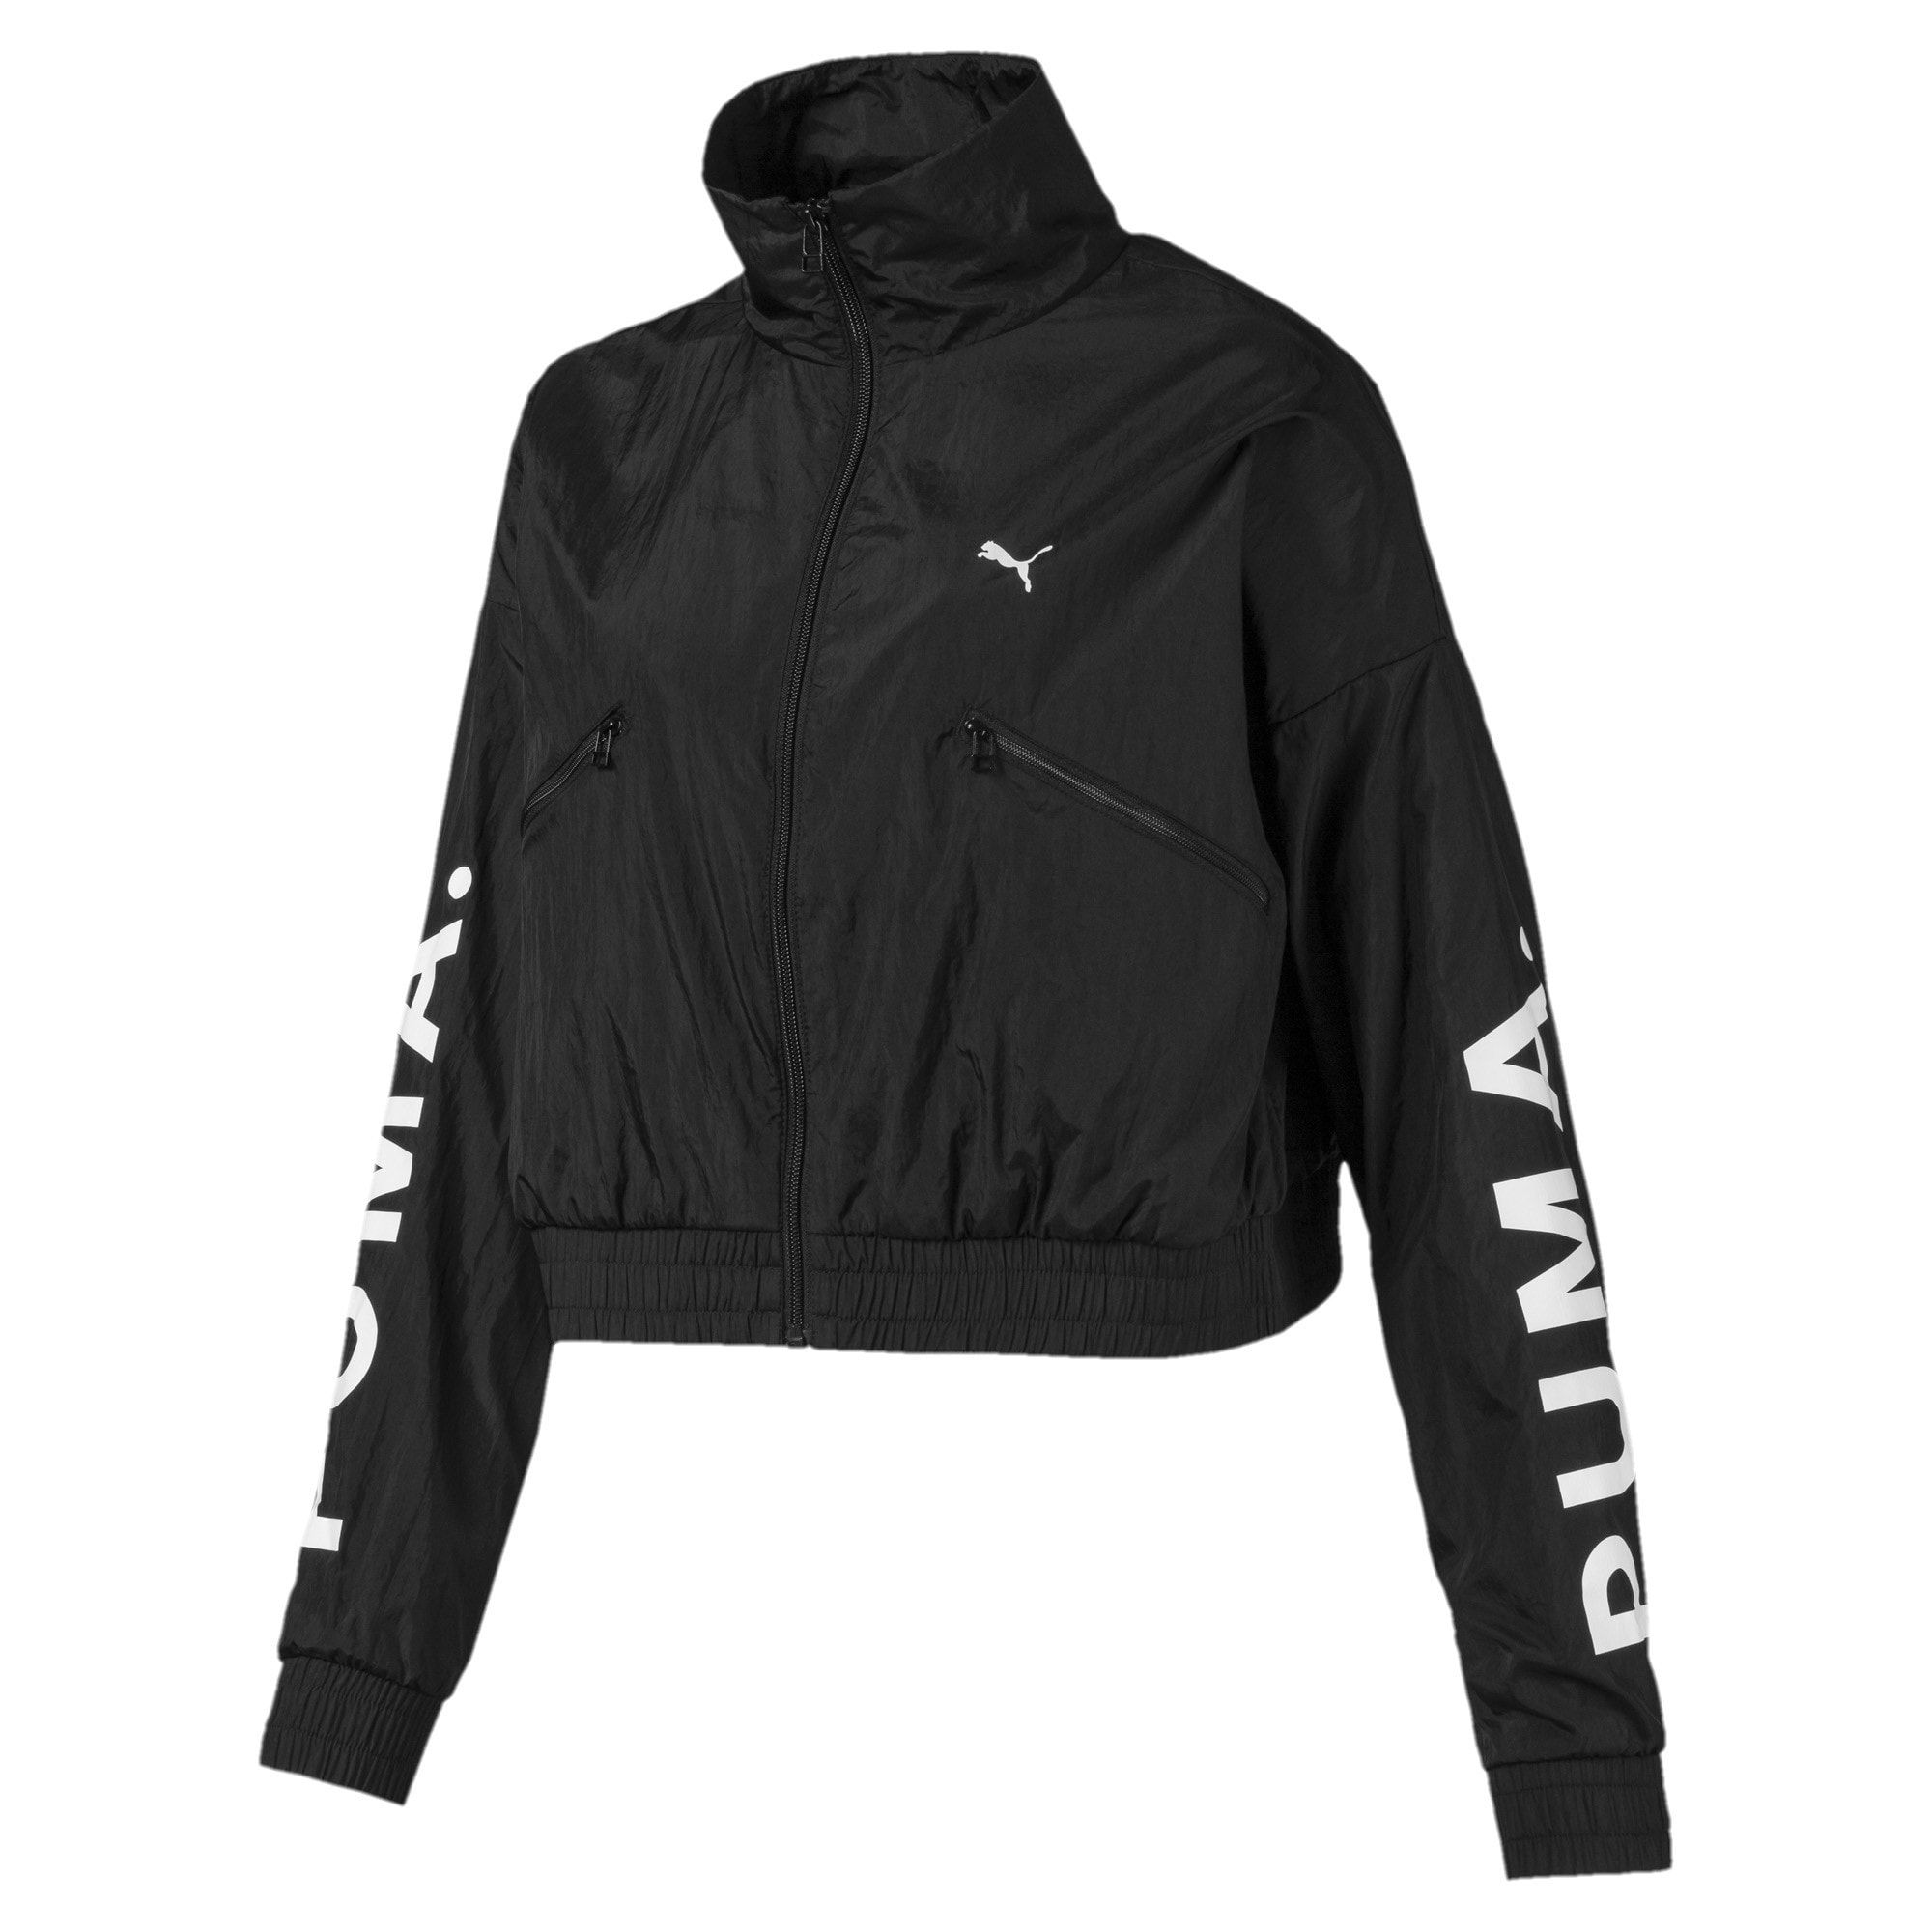 Thumbnail 1 of Chase Woven Women's Jacket, Puma Black, medium